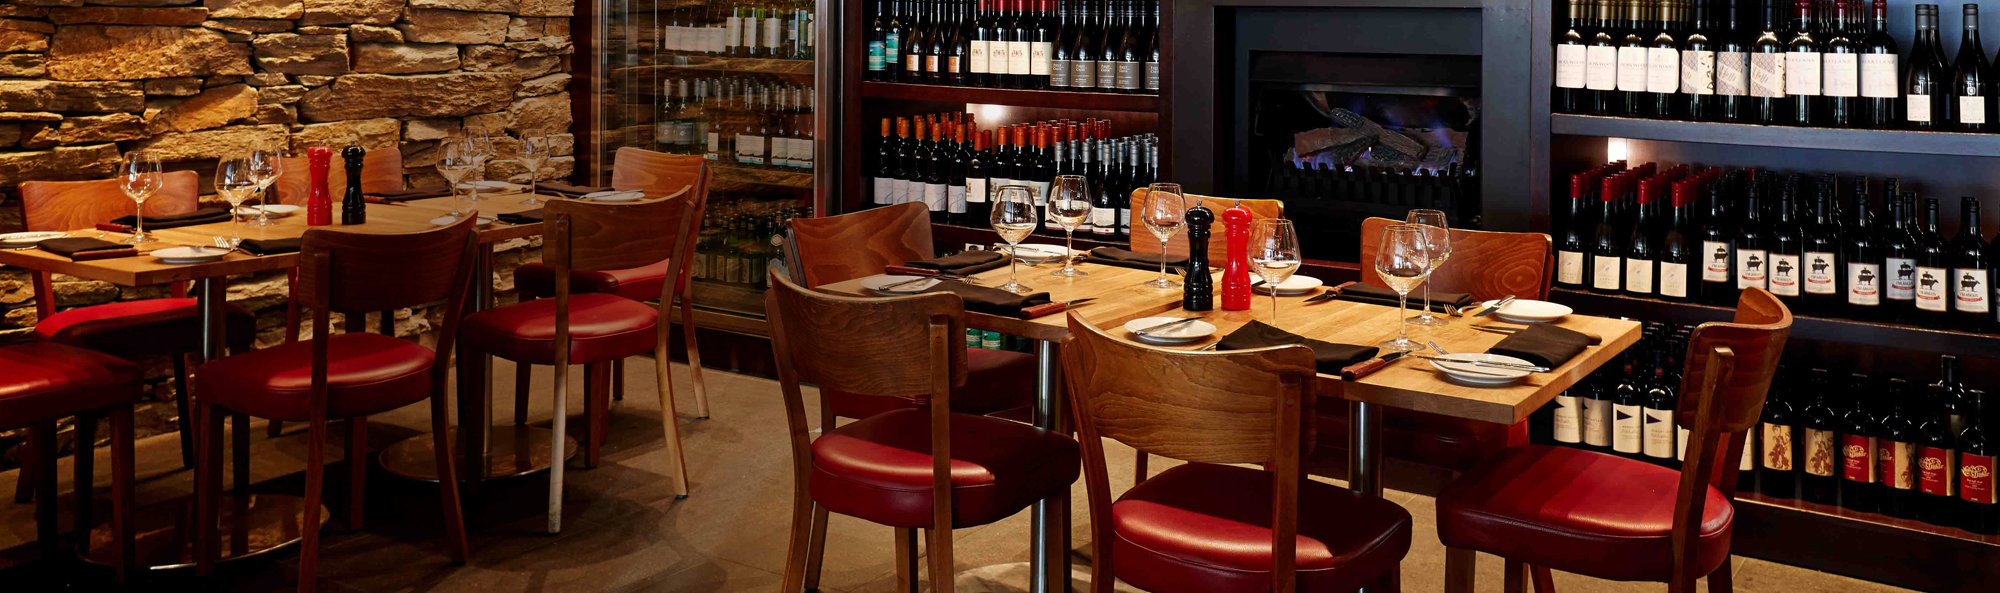 Functions & Events at I'm Angus Steakhouse